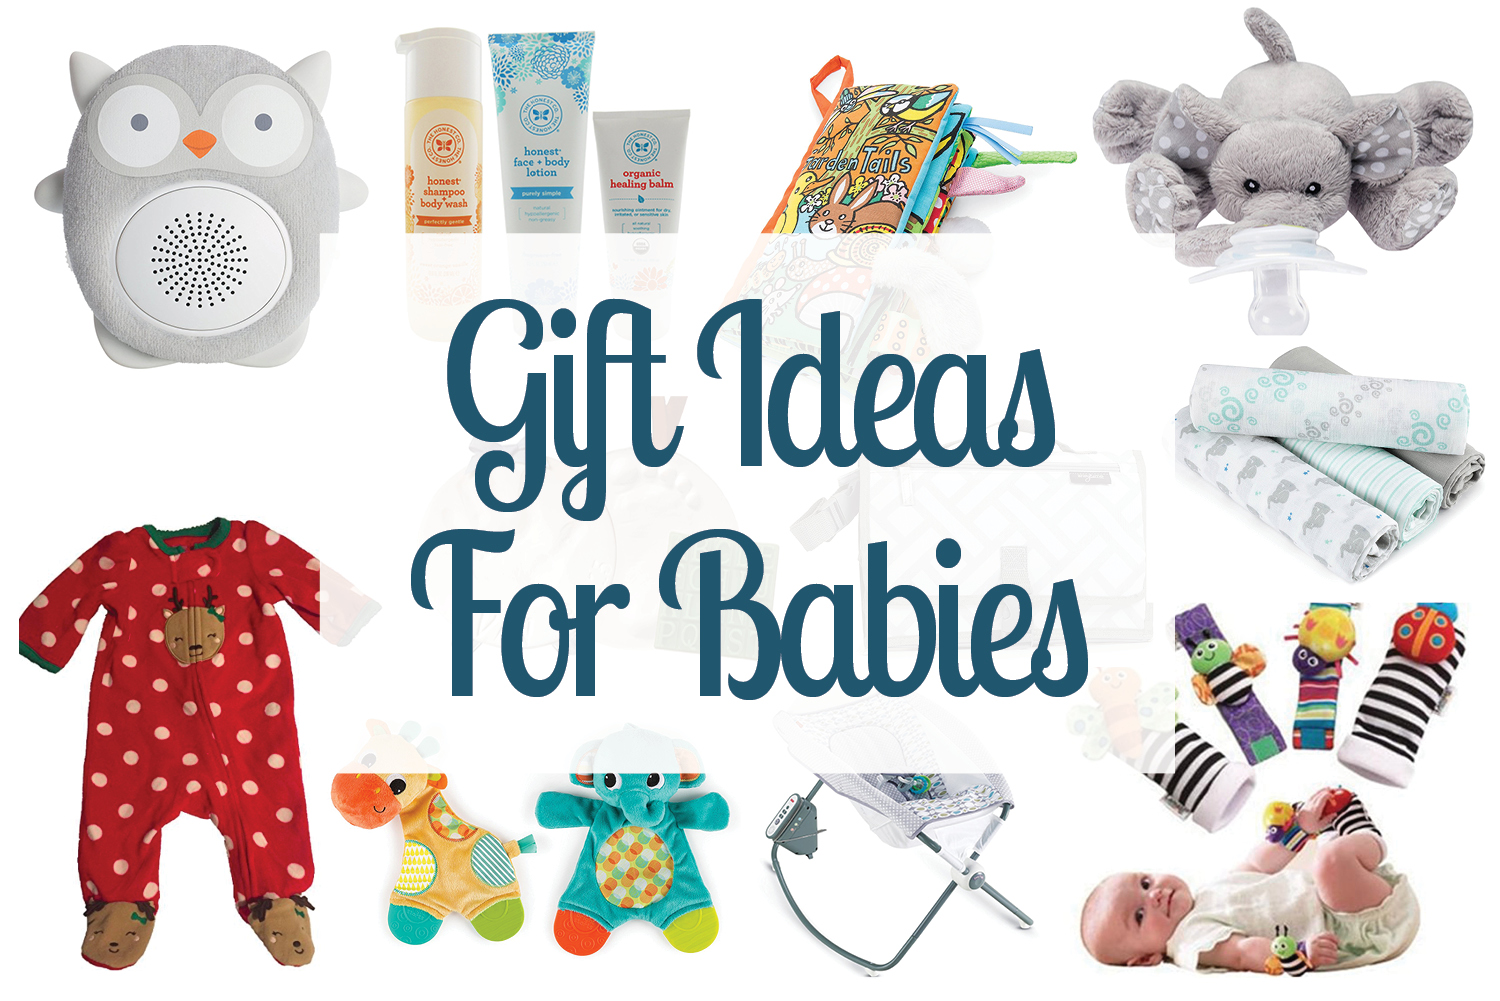 Baby Gift Ideas For Christmas : Gifts for babies small stuff counts